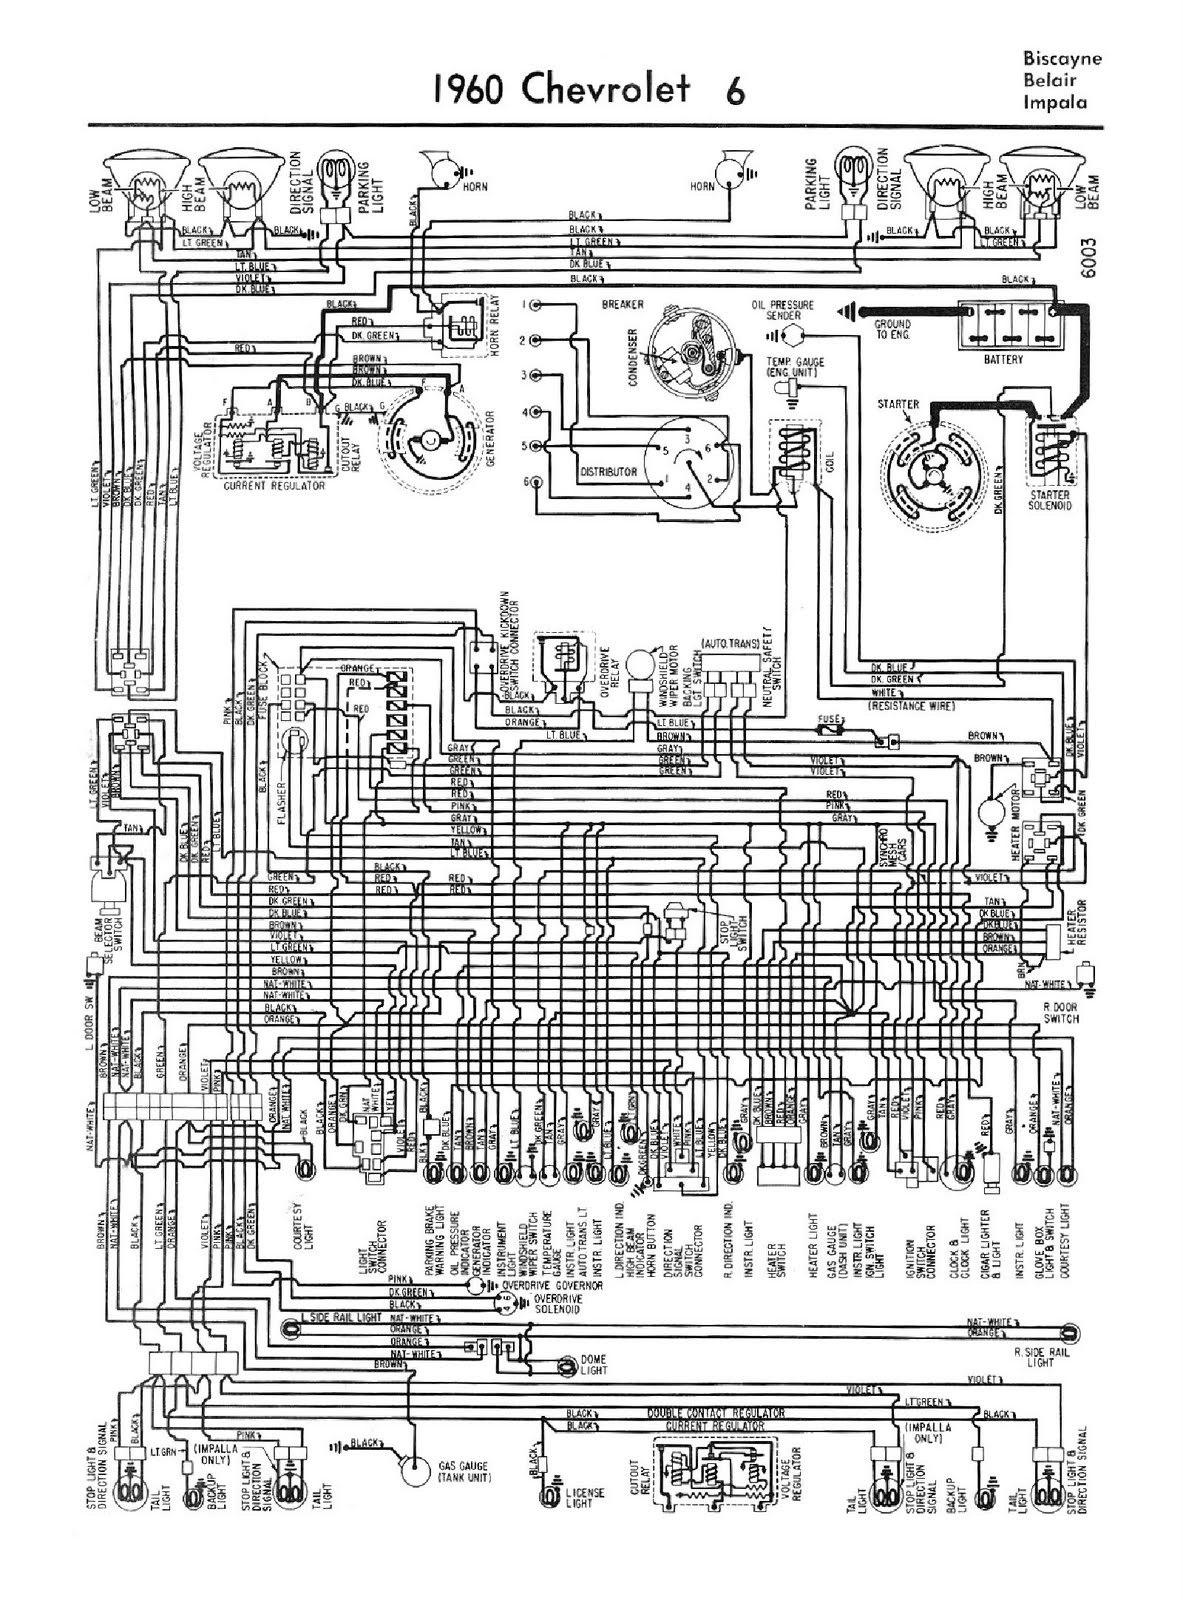 small resolution of free auto wiring diagram 1960 chevrolet v6 biscayne belair and impala wiring diagram 97 cadillac deville